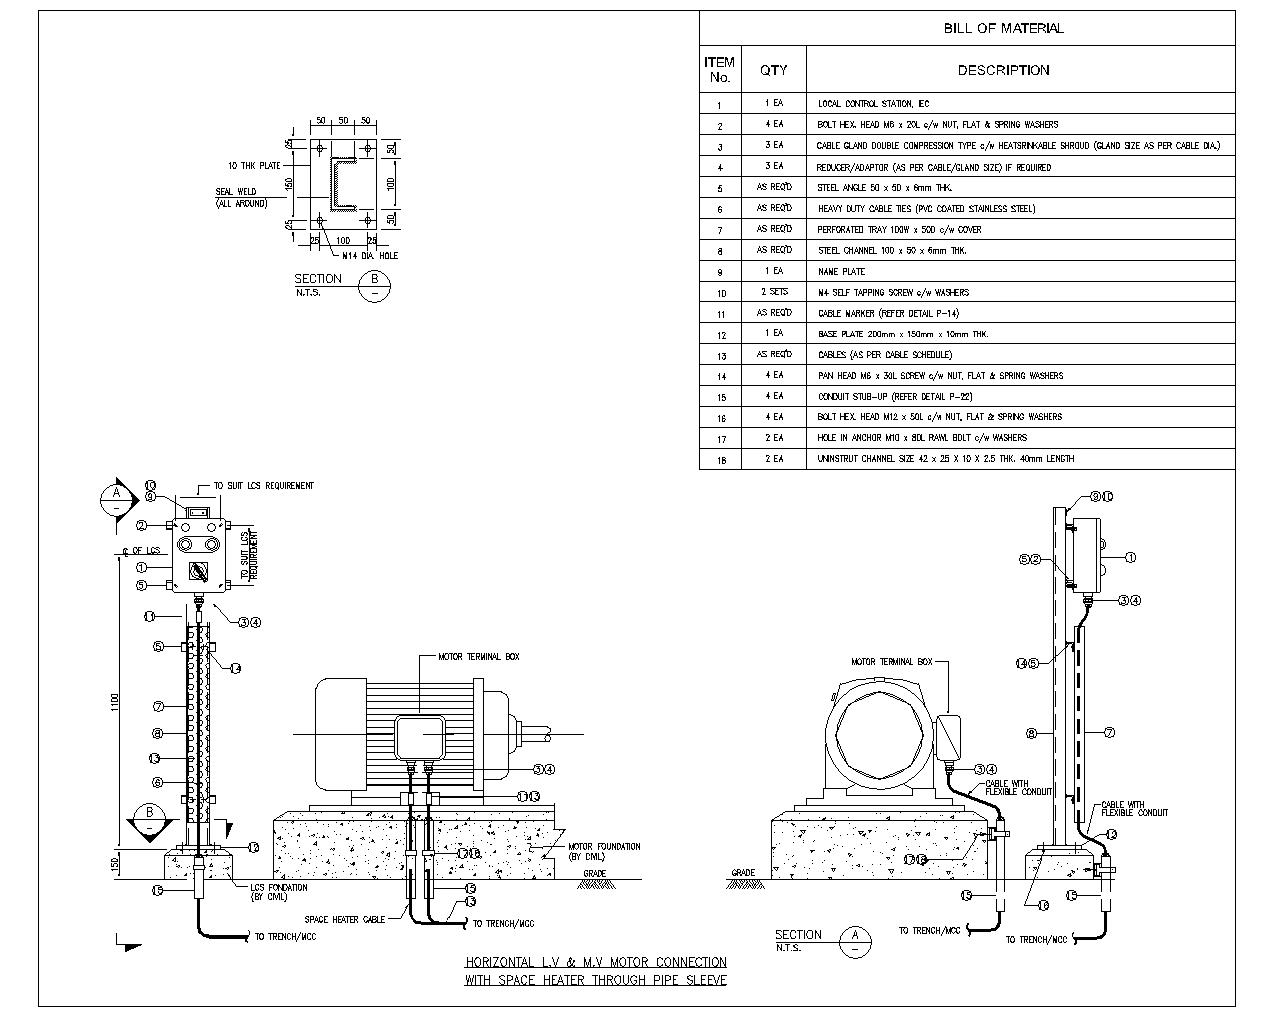 Horizontal Motor With Space Heater Through Pipe Sleeve